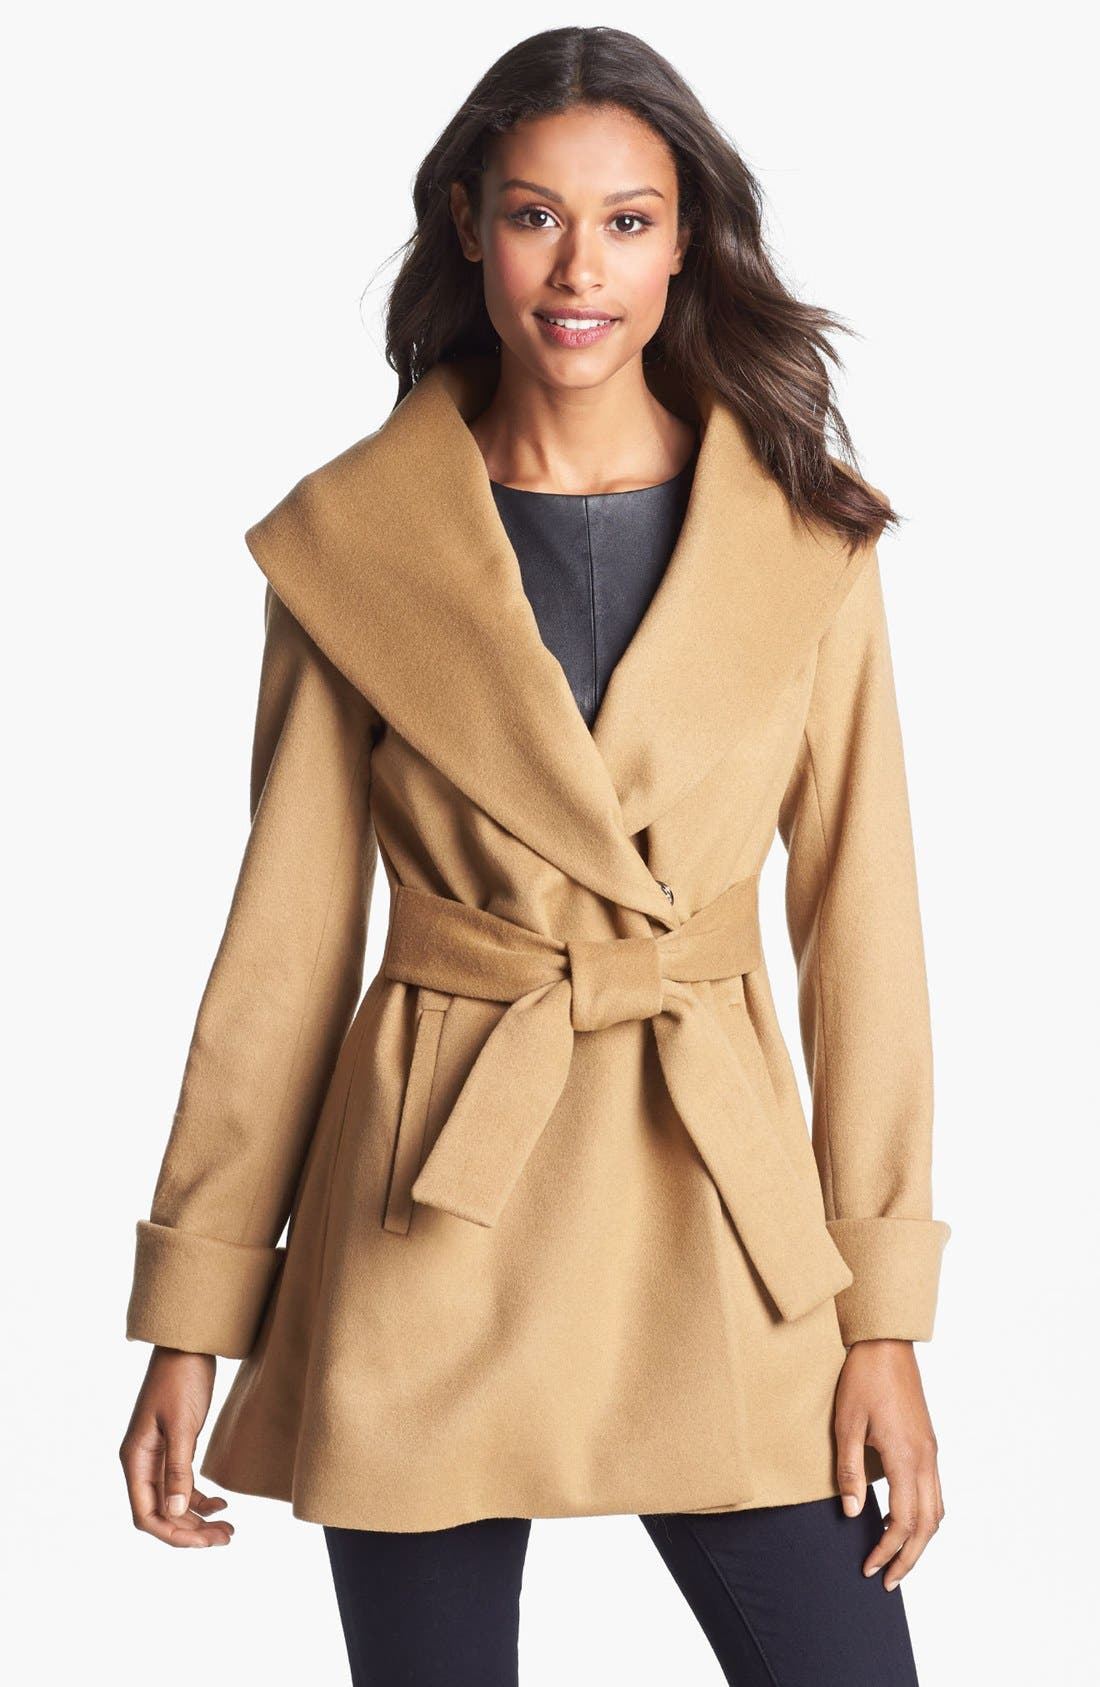 Women's Wool Wrap Coat with Detachable Belt and Oversized Collar. from $ 72 84 Prime. out of 5 stars T Tahari. Women's Marla Wool Coat with Oversized Collar New Name: Marylin. from $ 97 Prime. out of 5 stars WLLW. Women Open Front Plaid Cardigan Drape Coat Wool Blends Coat Outerwear Wrap.